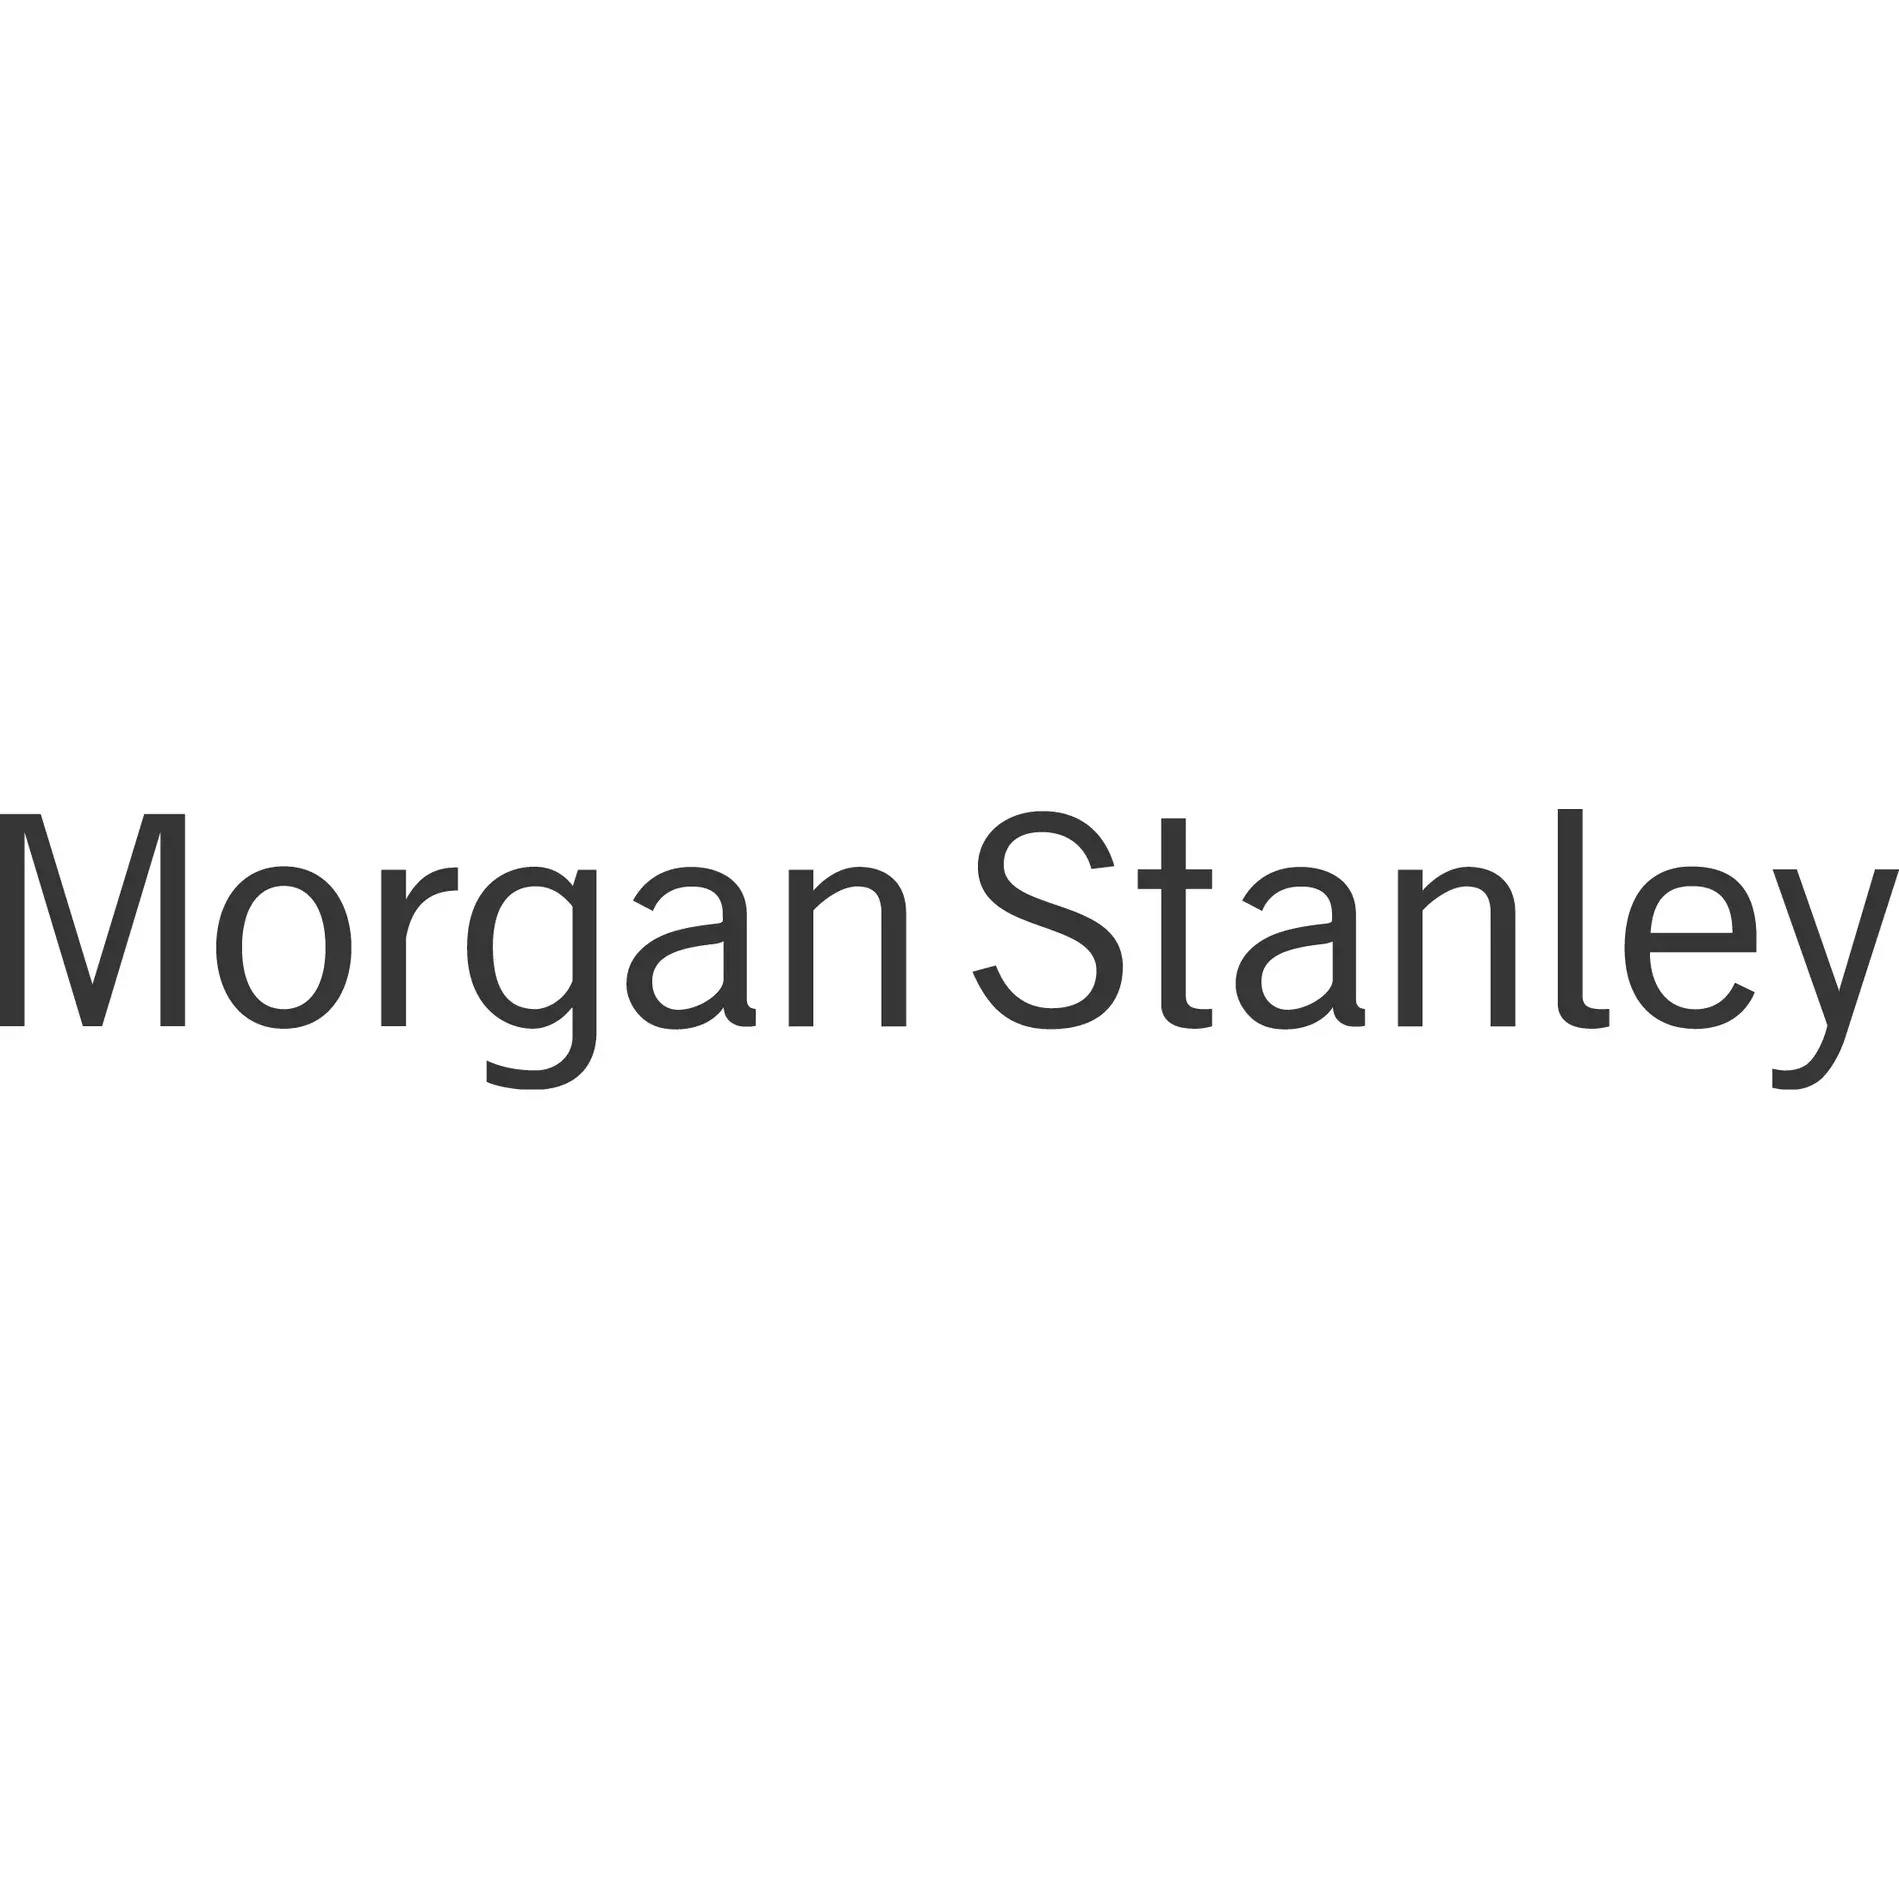 The Johnston Group - Morgan Stanley